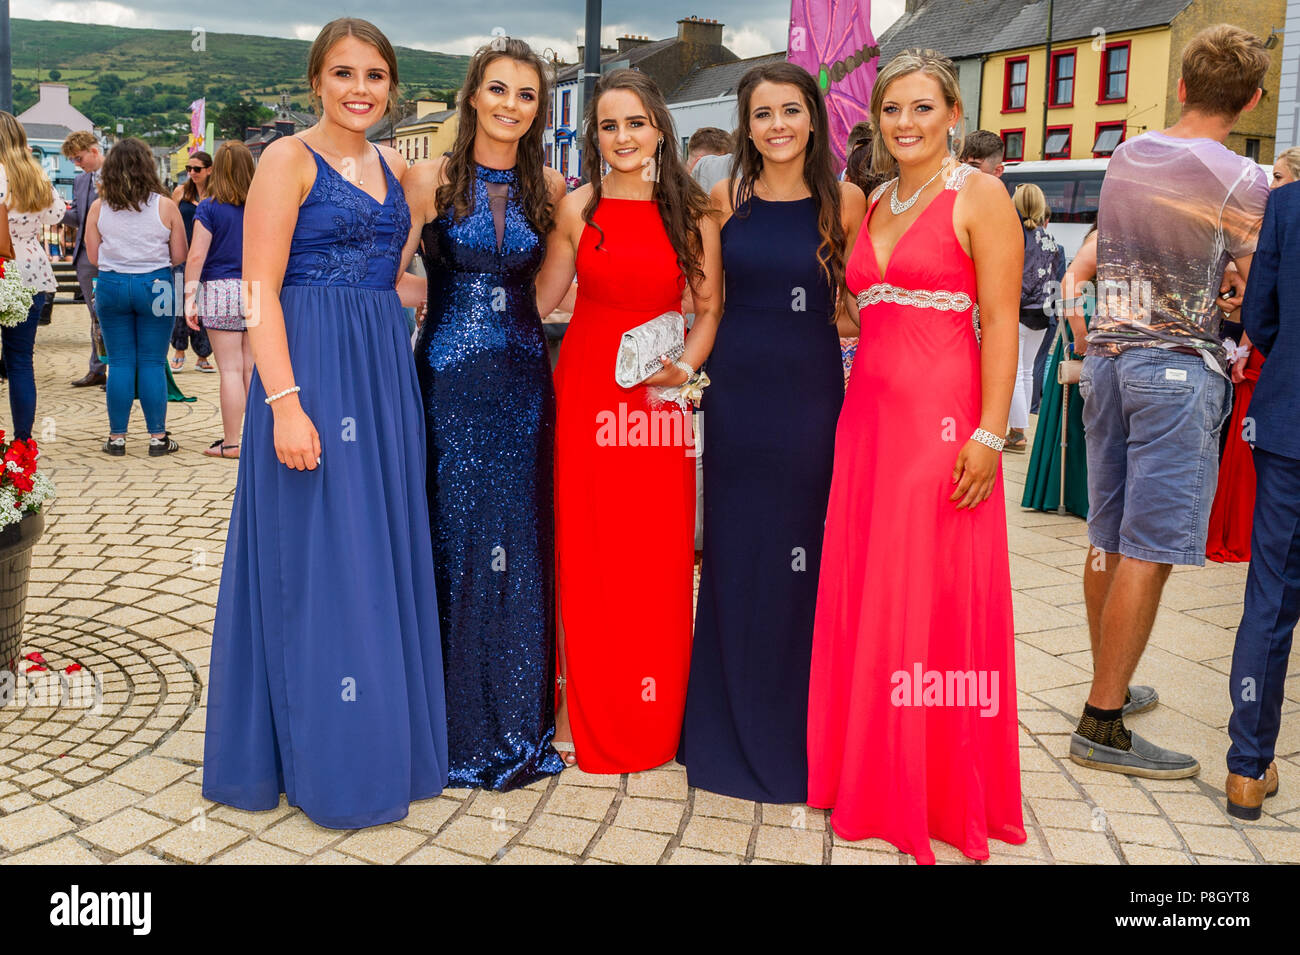 Bantry, Ireland. 11th July, 2018. Coláiste Pobail Bheanntraí students Aoife Murnane, Fiona Barry, Nora O'Shea, Heidi Stock and Clodagh Lynch, all from Bantry, are pictured before travelling to the Rochestown Park Hotel in Cork city for their Debs ball. Credit: Andy Gibson/Alamy Live News. - Stock Image